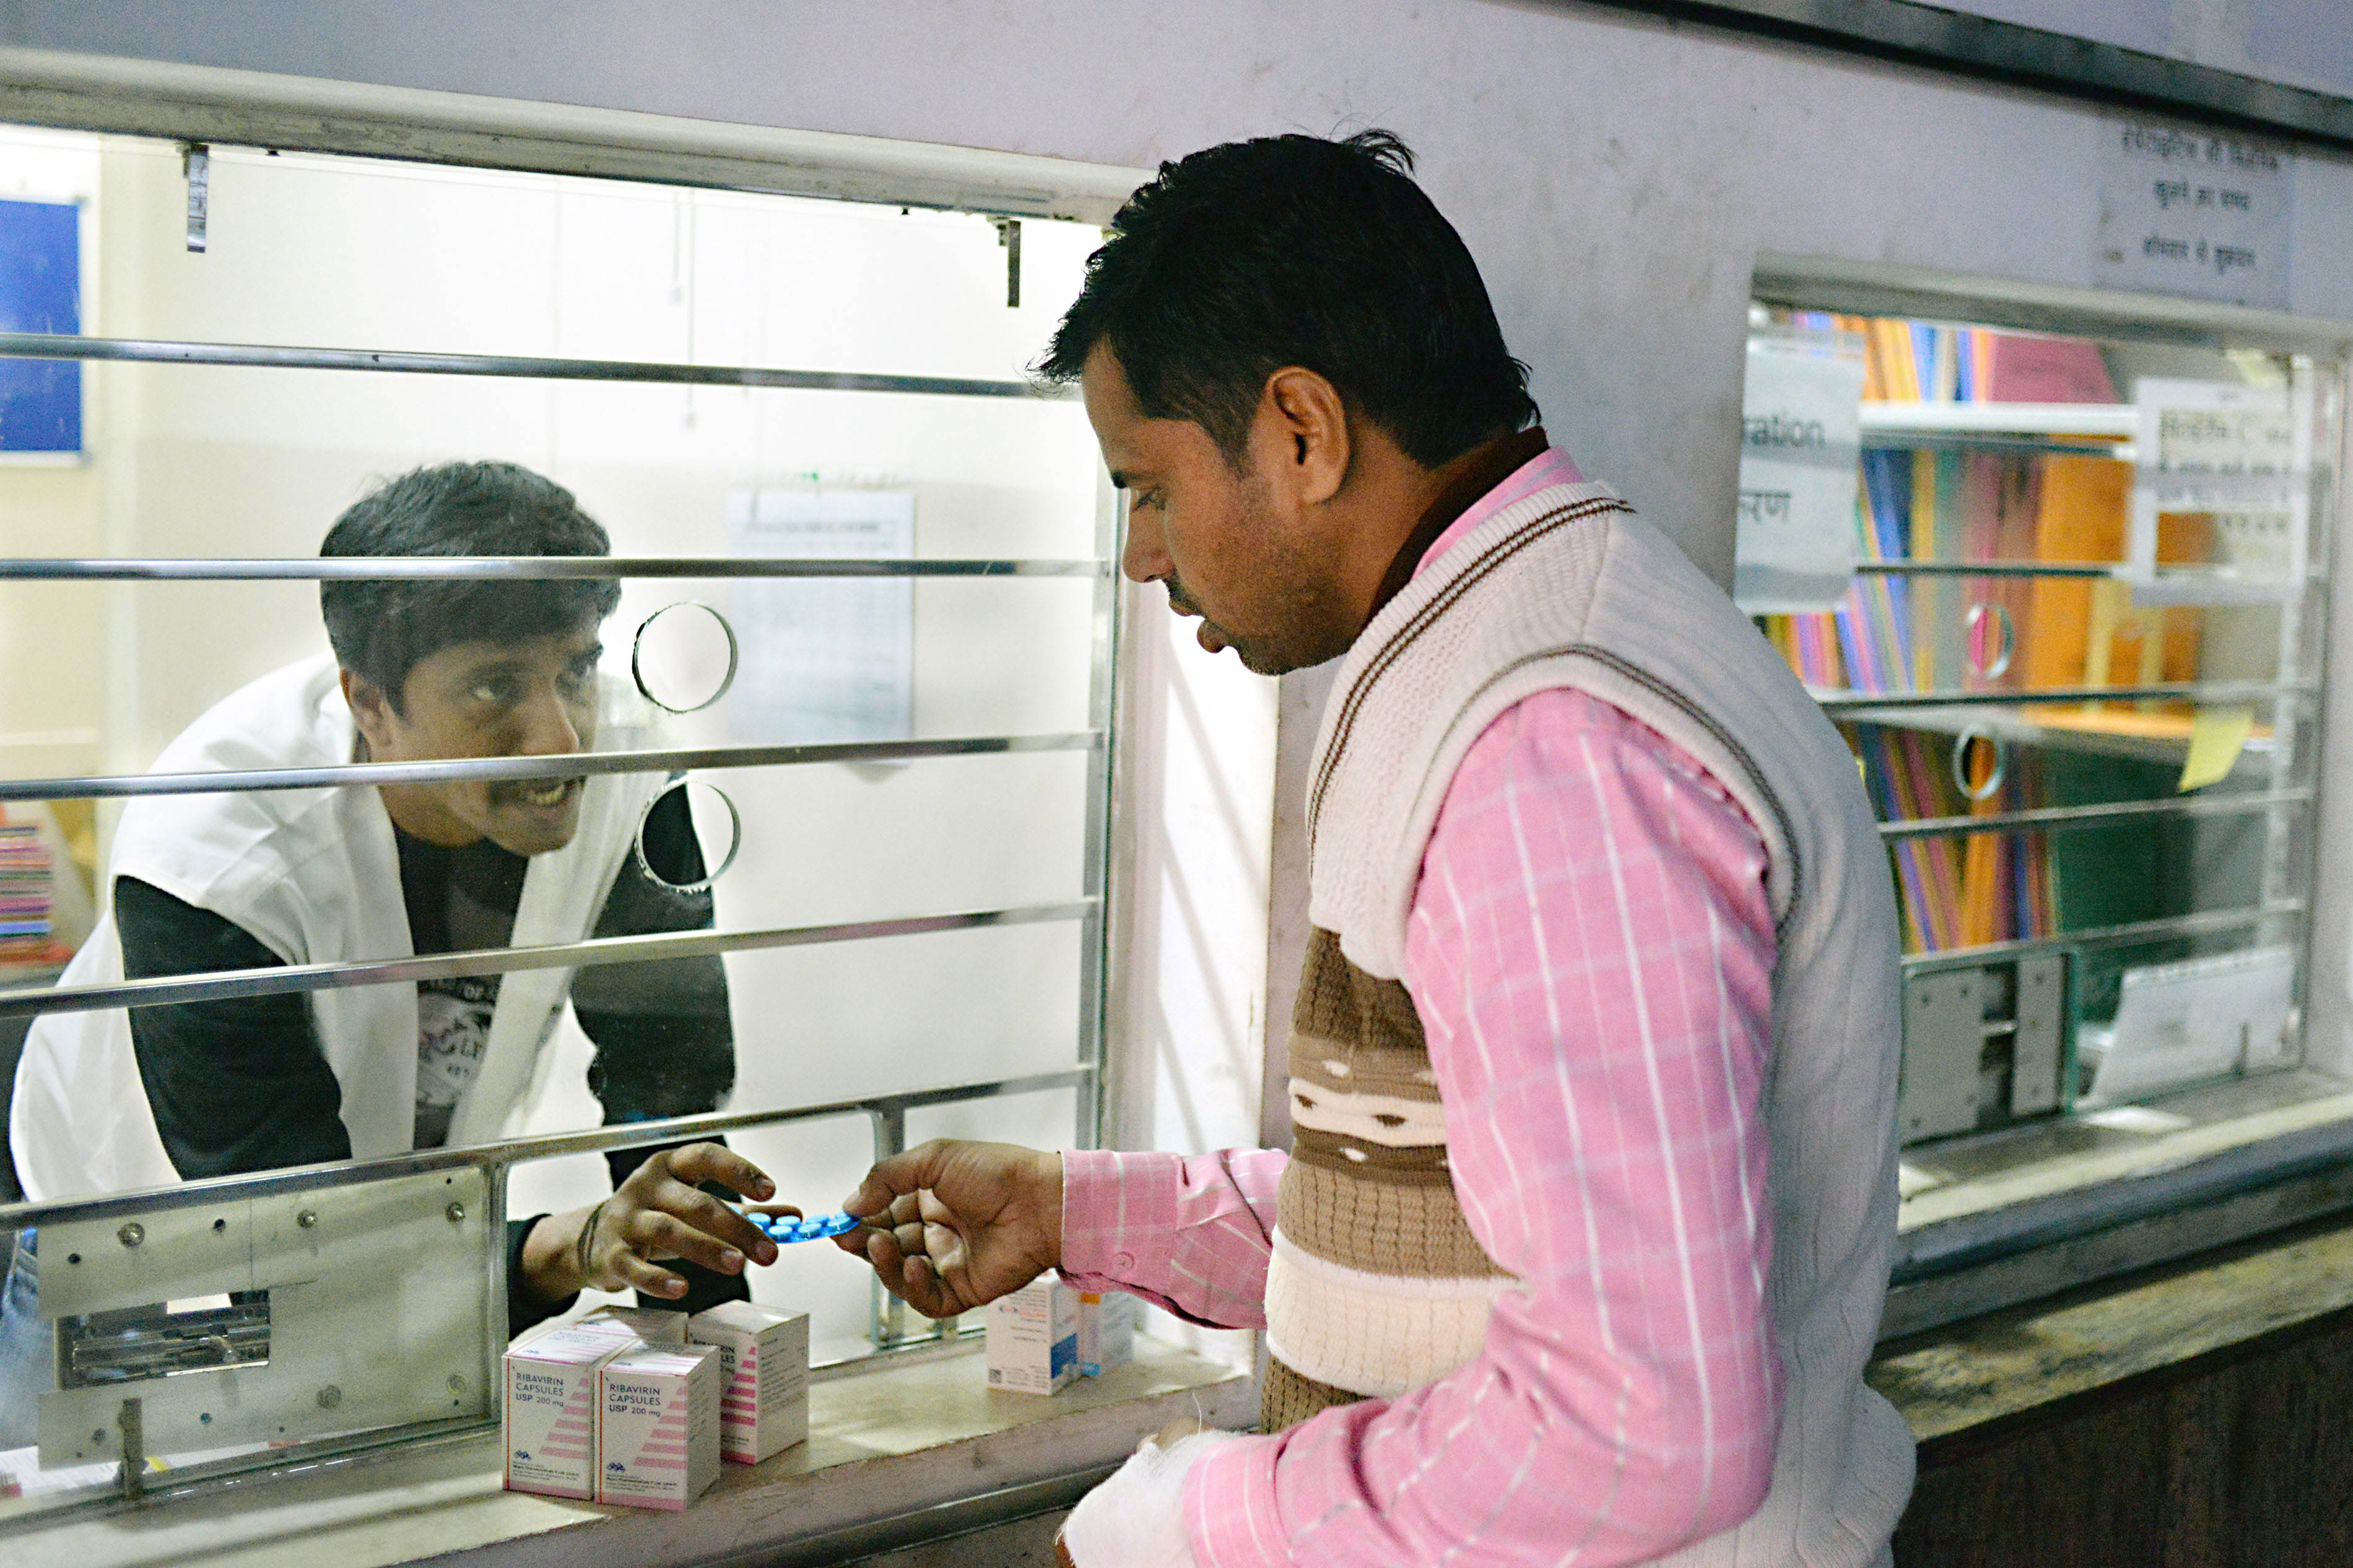 MSF Nurses Jijo Xavier dispenses drugs to a patient at MSF's hepatitis C clinic located in PL Sharma District Hospital, Meerut.